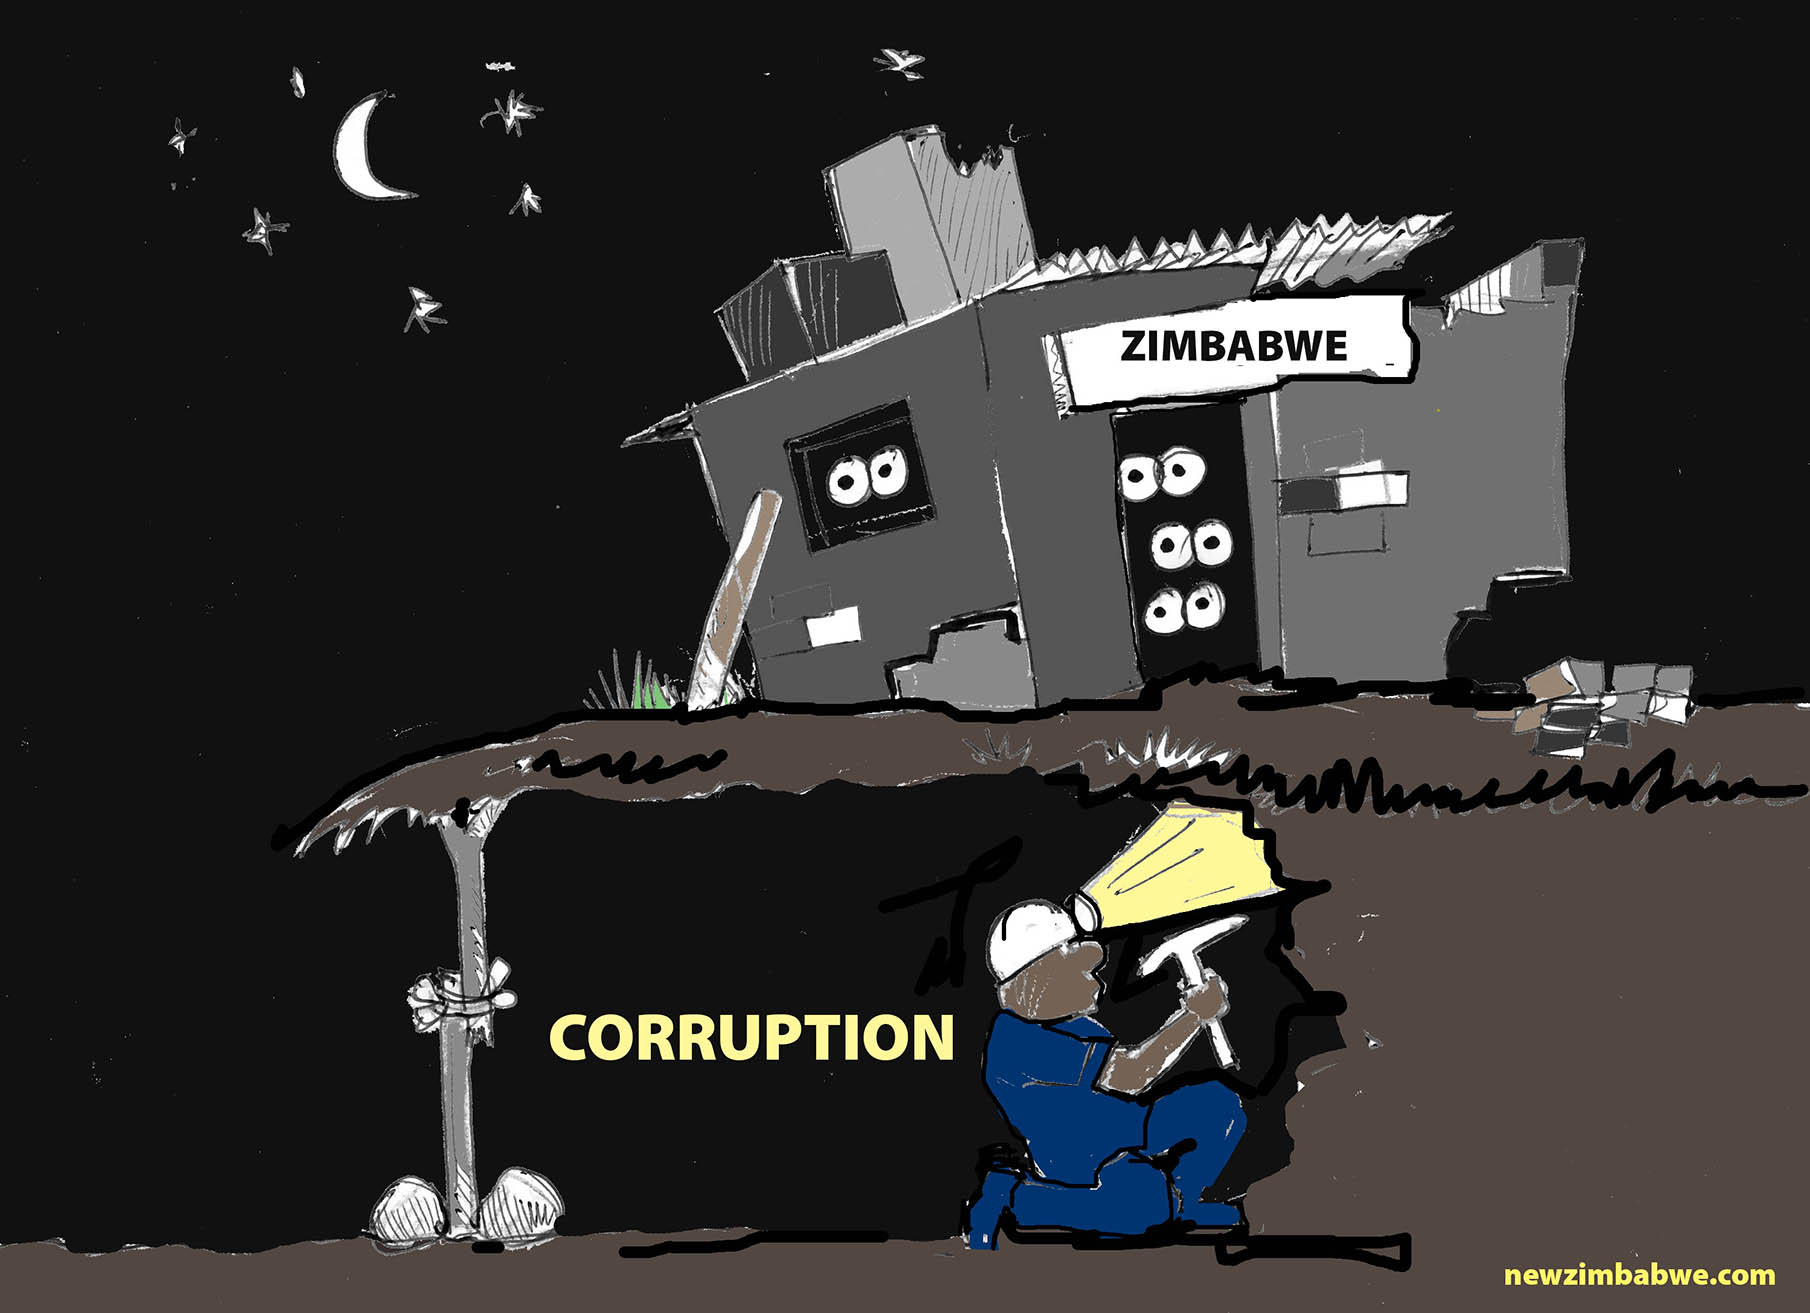 Corruption hinders development